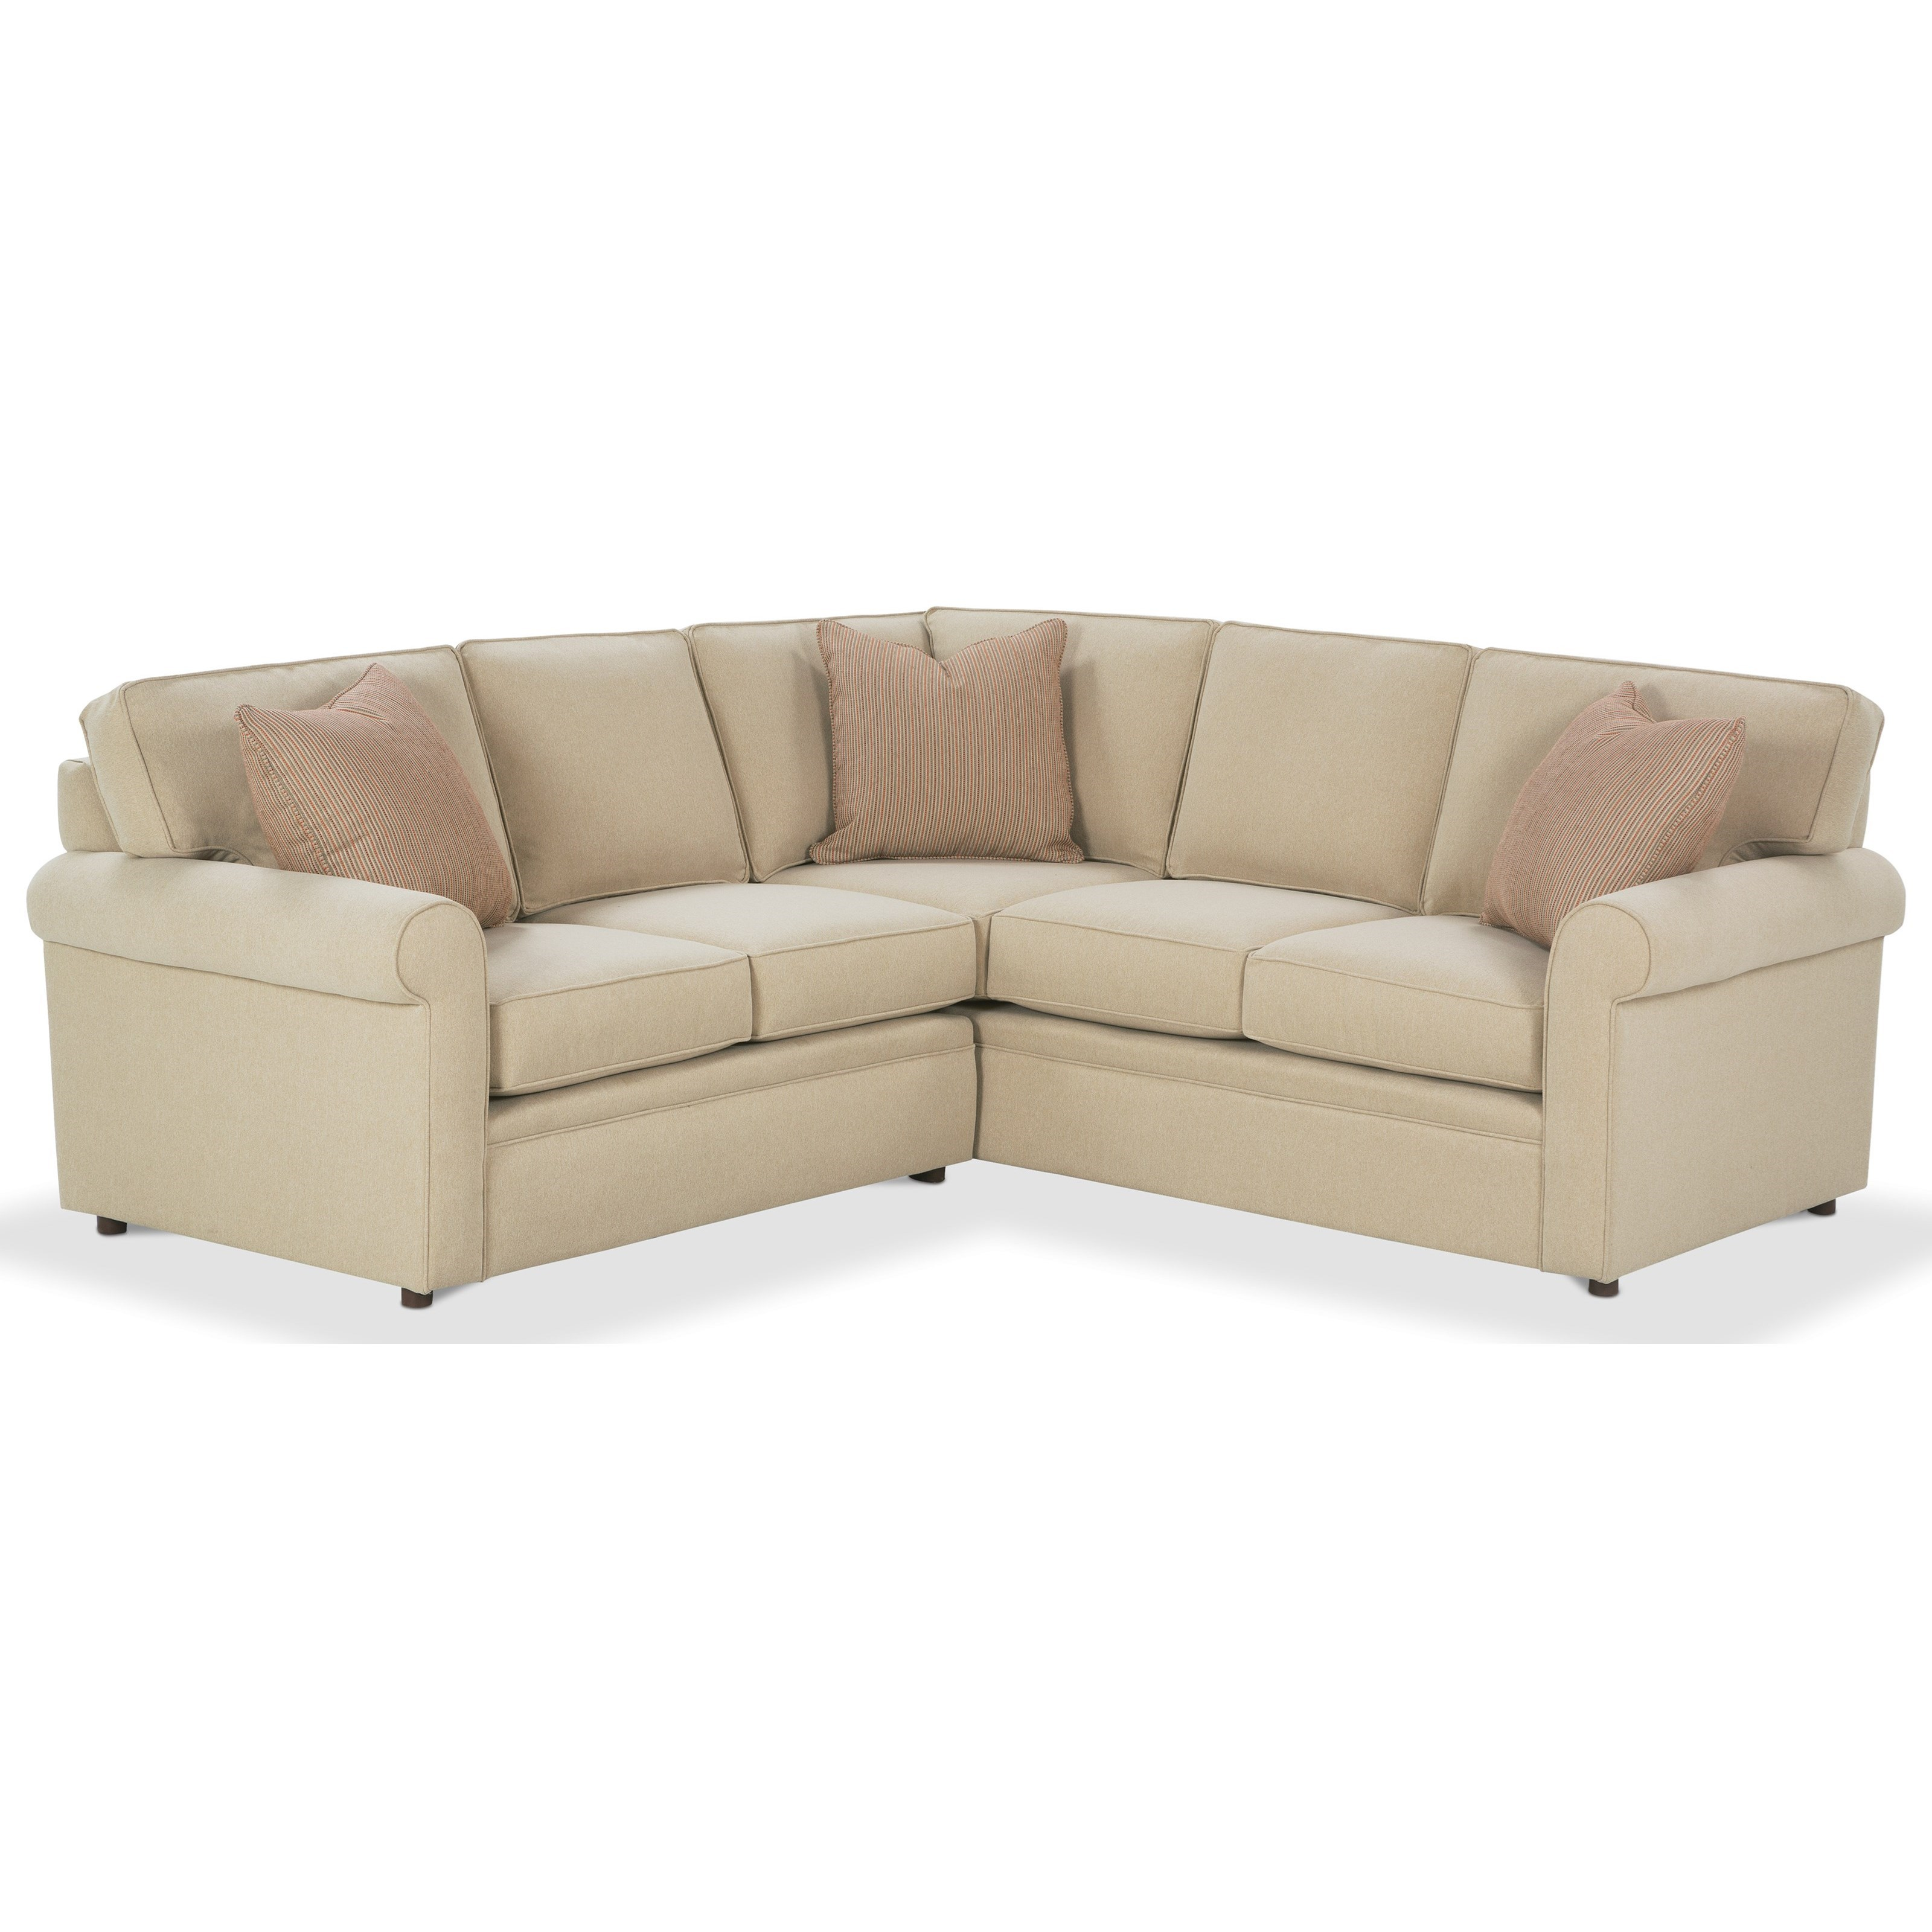 rowe brentwood rolled arm sectional sofa johnny janosik With sectional sofas johnny janosik